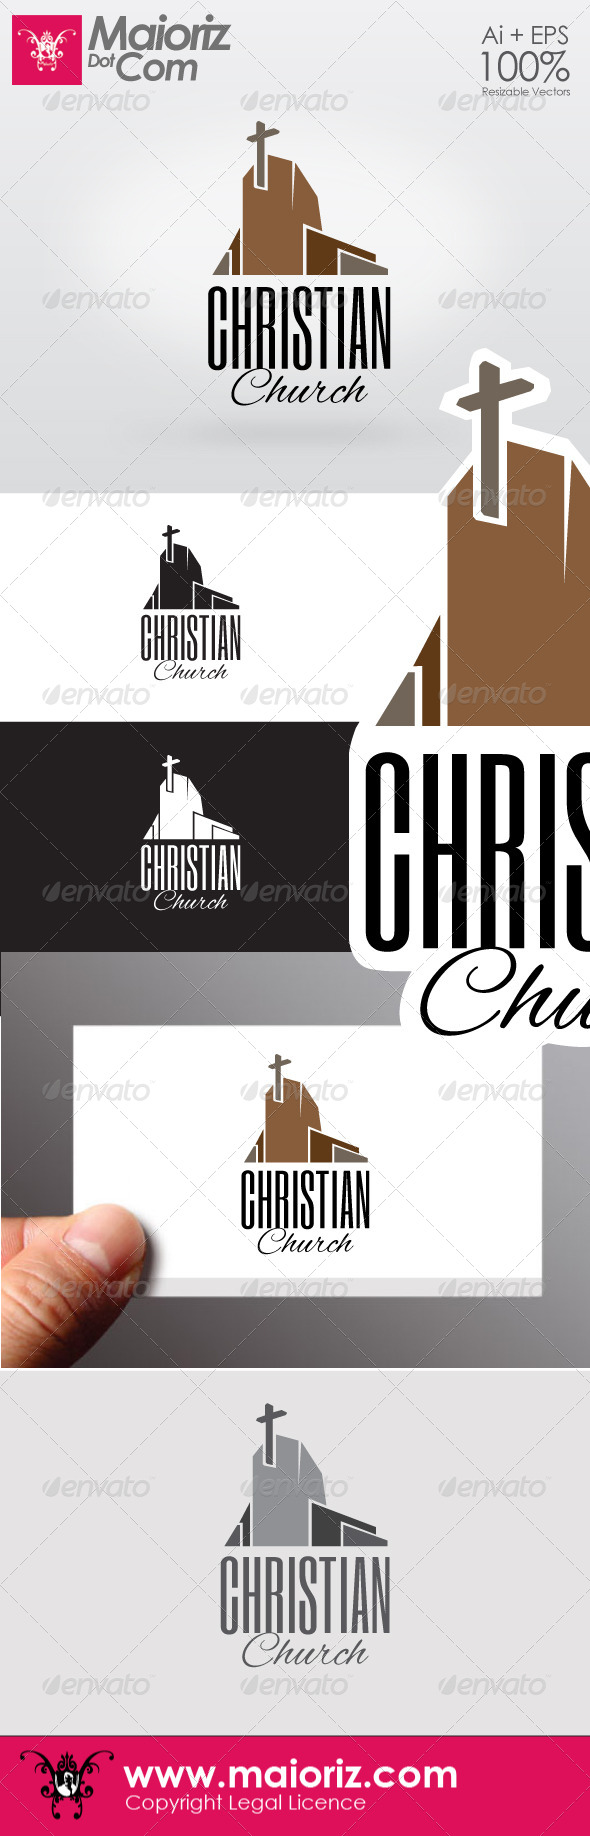 Christian Chruch Logo - Buildings Logo Templates